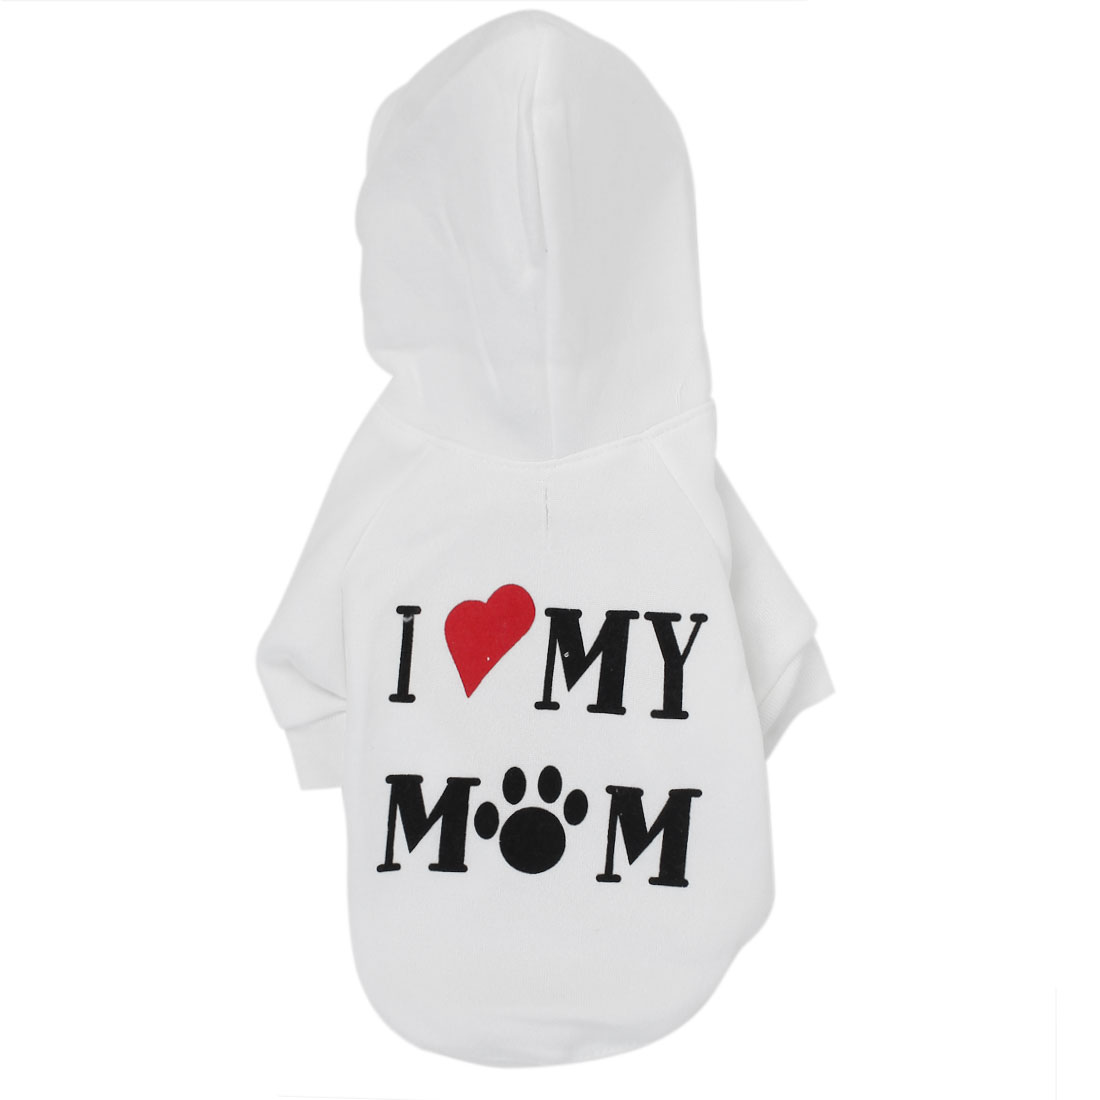 I LOVE MOM Pet Cat Puppy Clothes Hoodie Warm Coat Apparel Costume White Size L